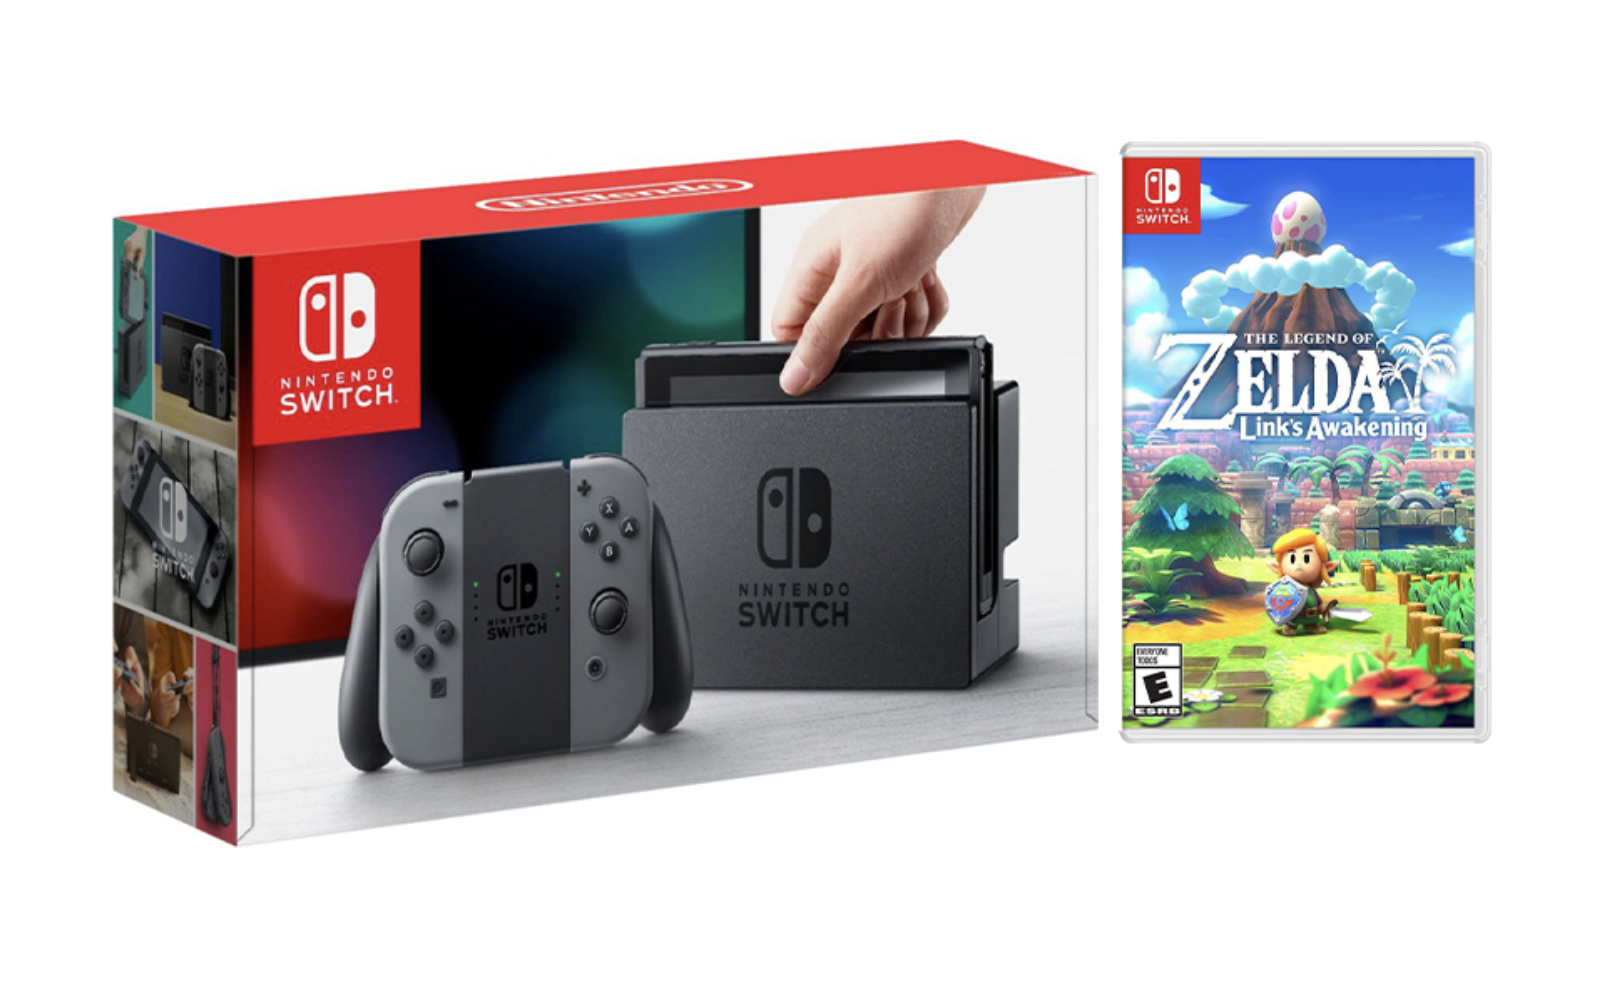 Nintendo Switch Gray Joy-Con Console Bundle with The Legend of Zelda: Link's Awakening